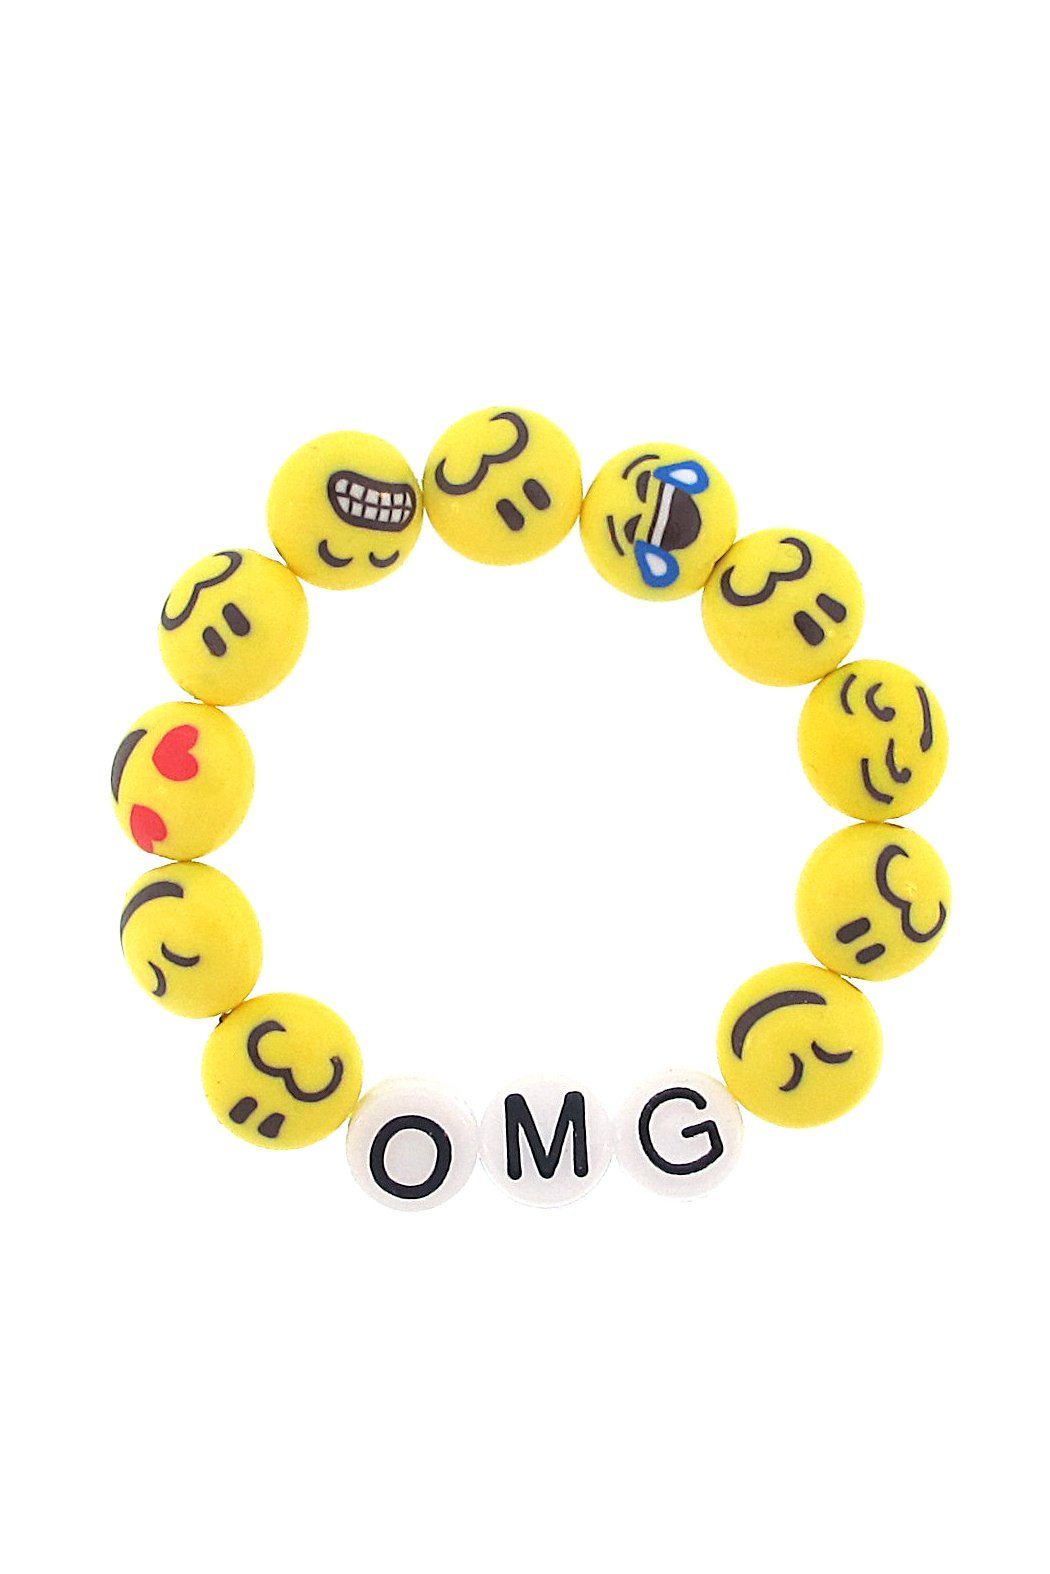 'OMG' Oh My God Emoji Stretch Bracelet